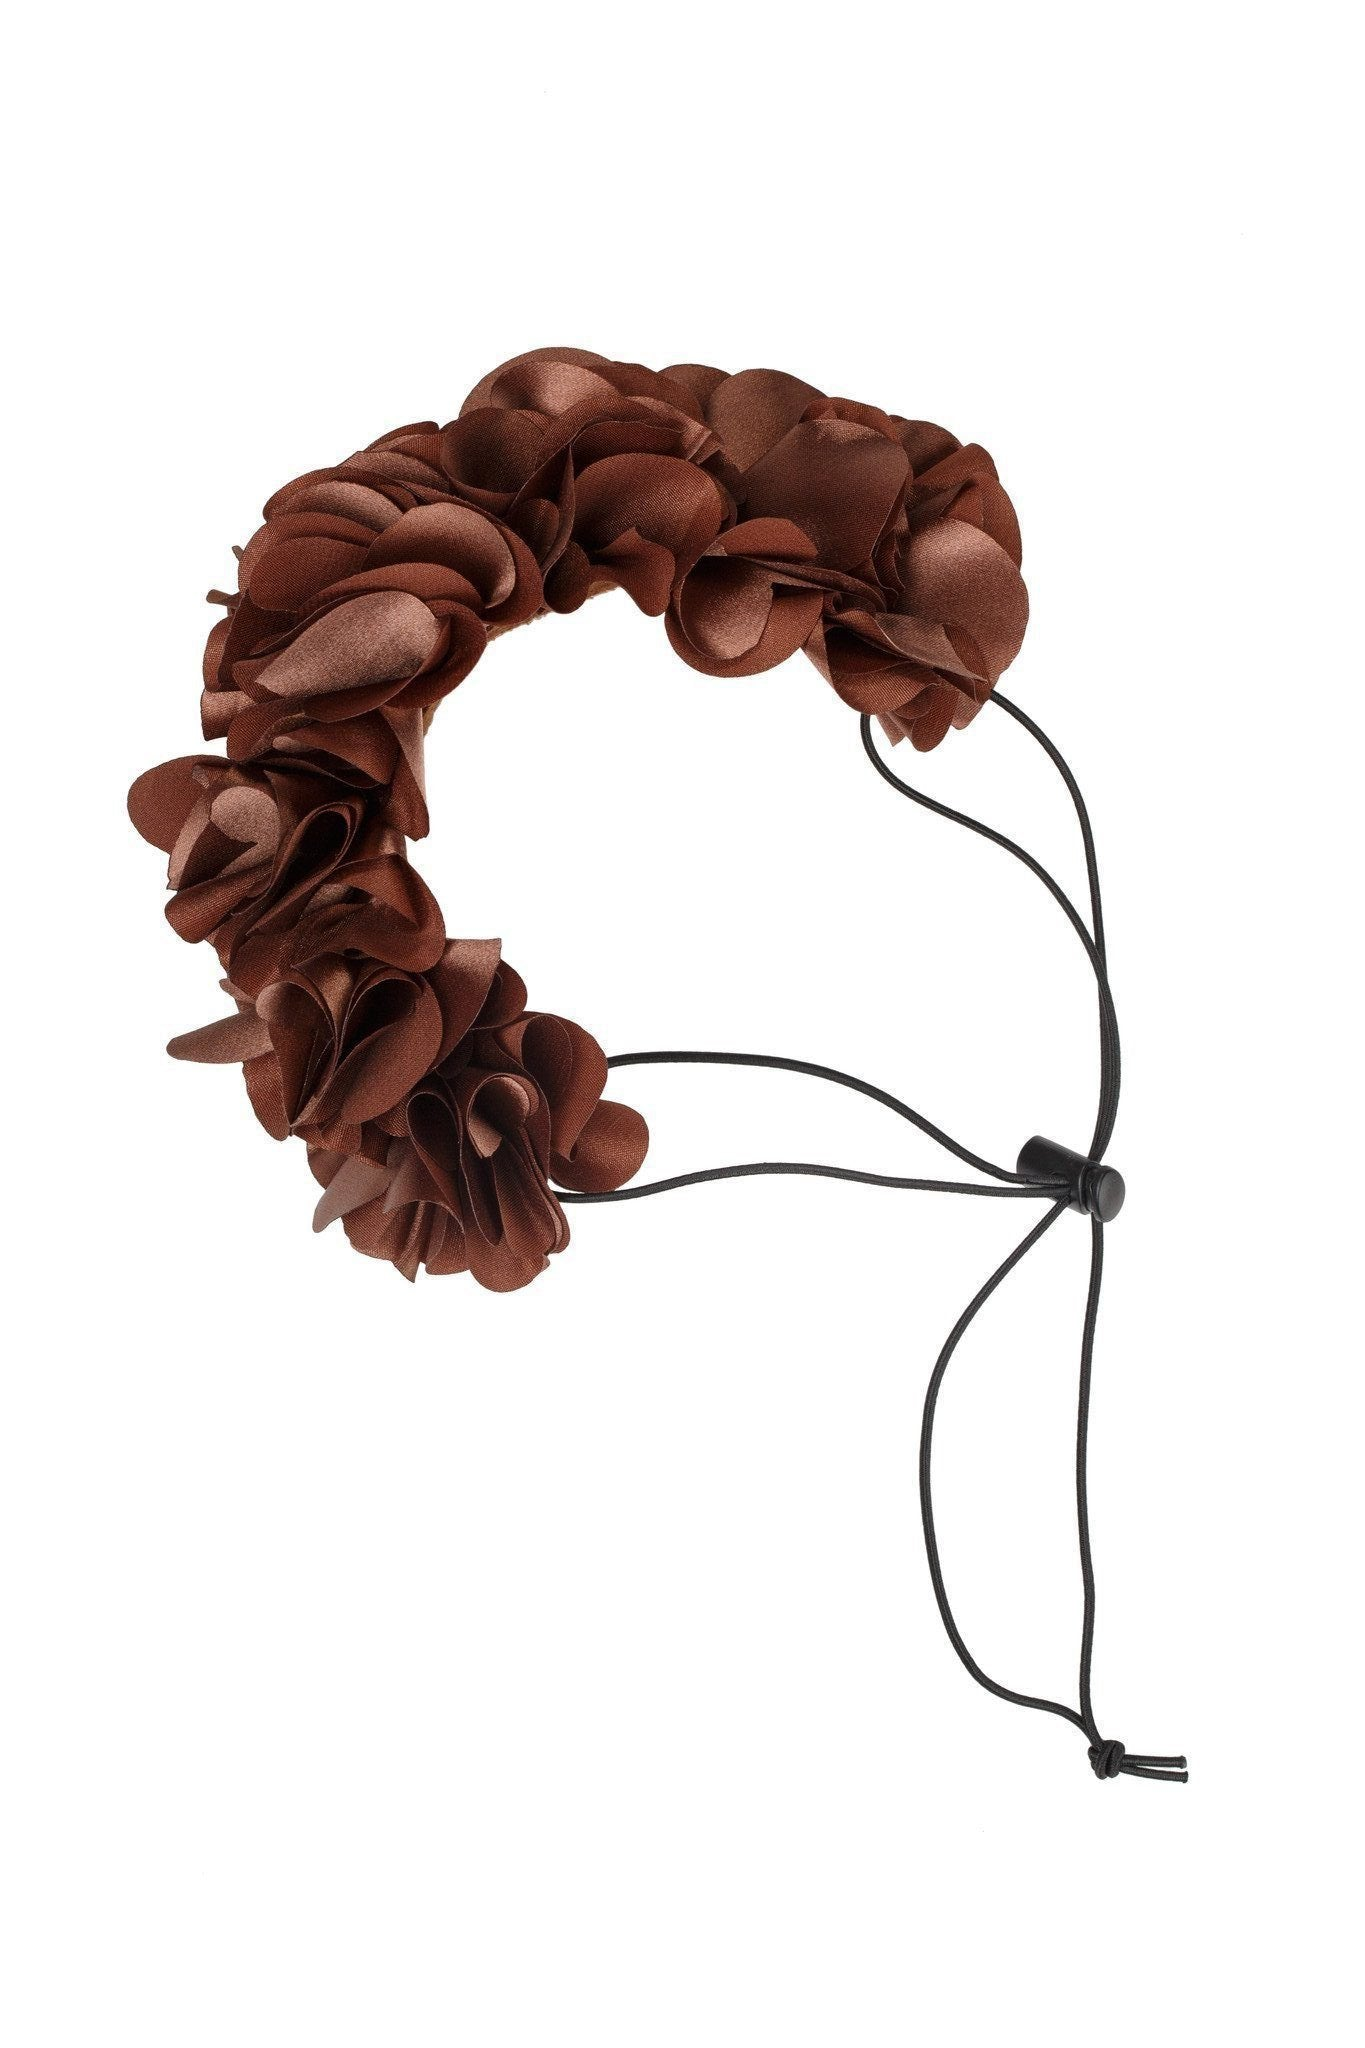 Floral Wreath Petit - Brown - PROJECT 6, modest fashion